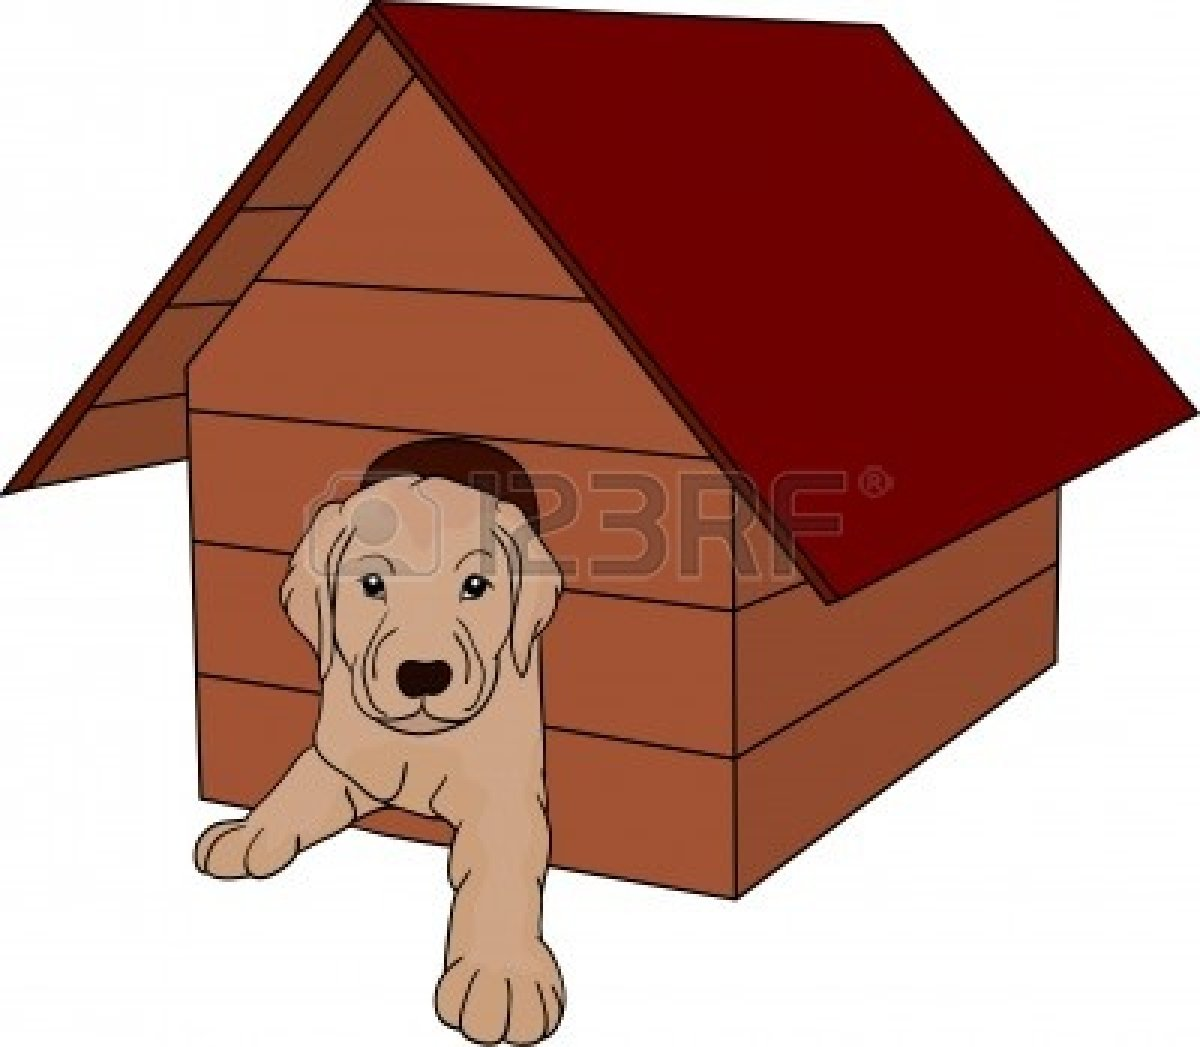 on clipart dog toy clipart panda free clipart images rh clipartpanda com  gingerbread dog house clipart